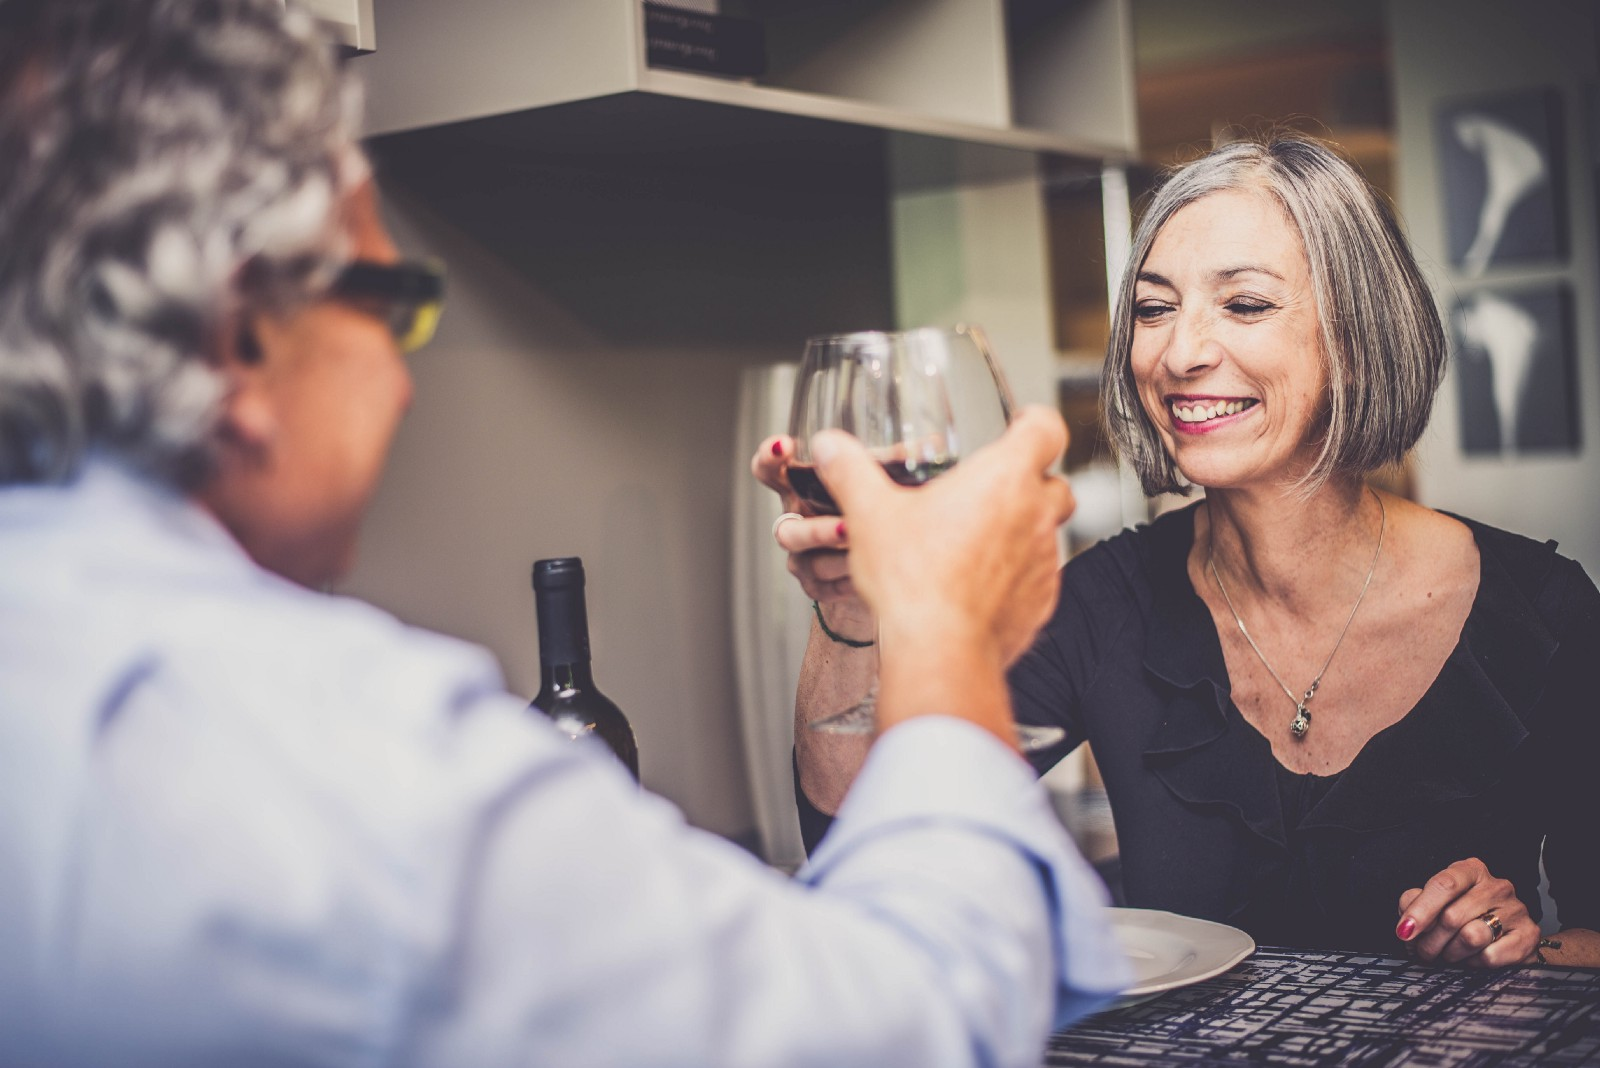 How to know if you are dating an alcoholic